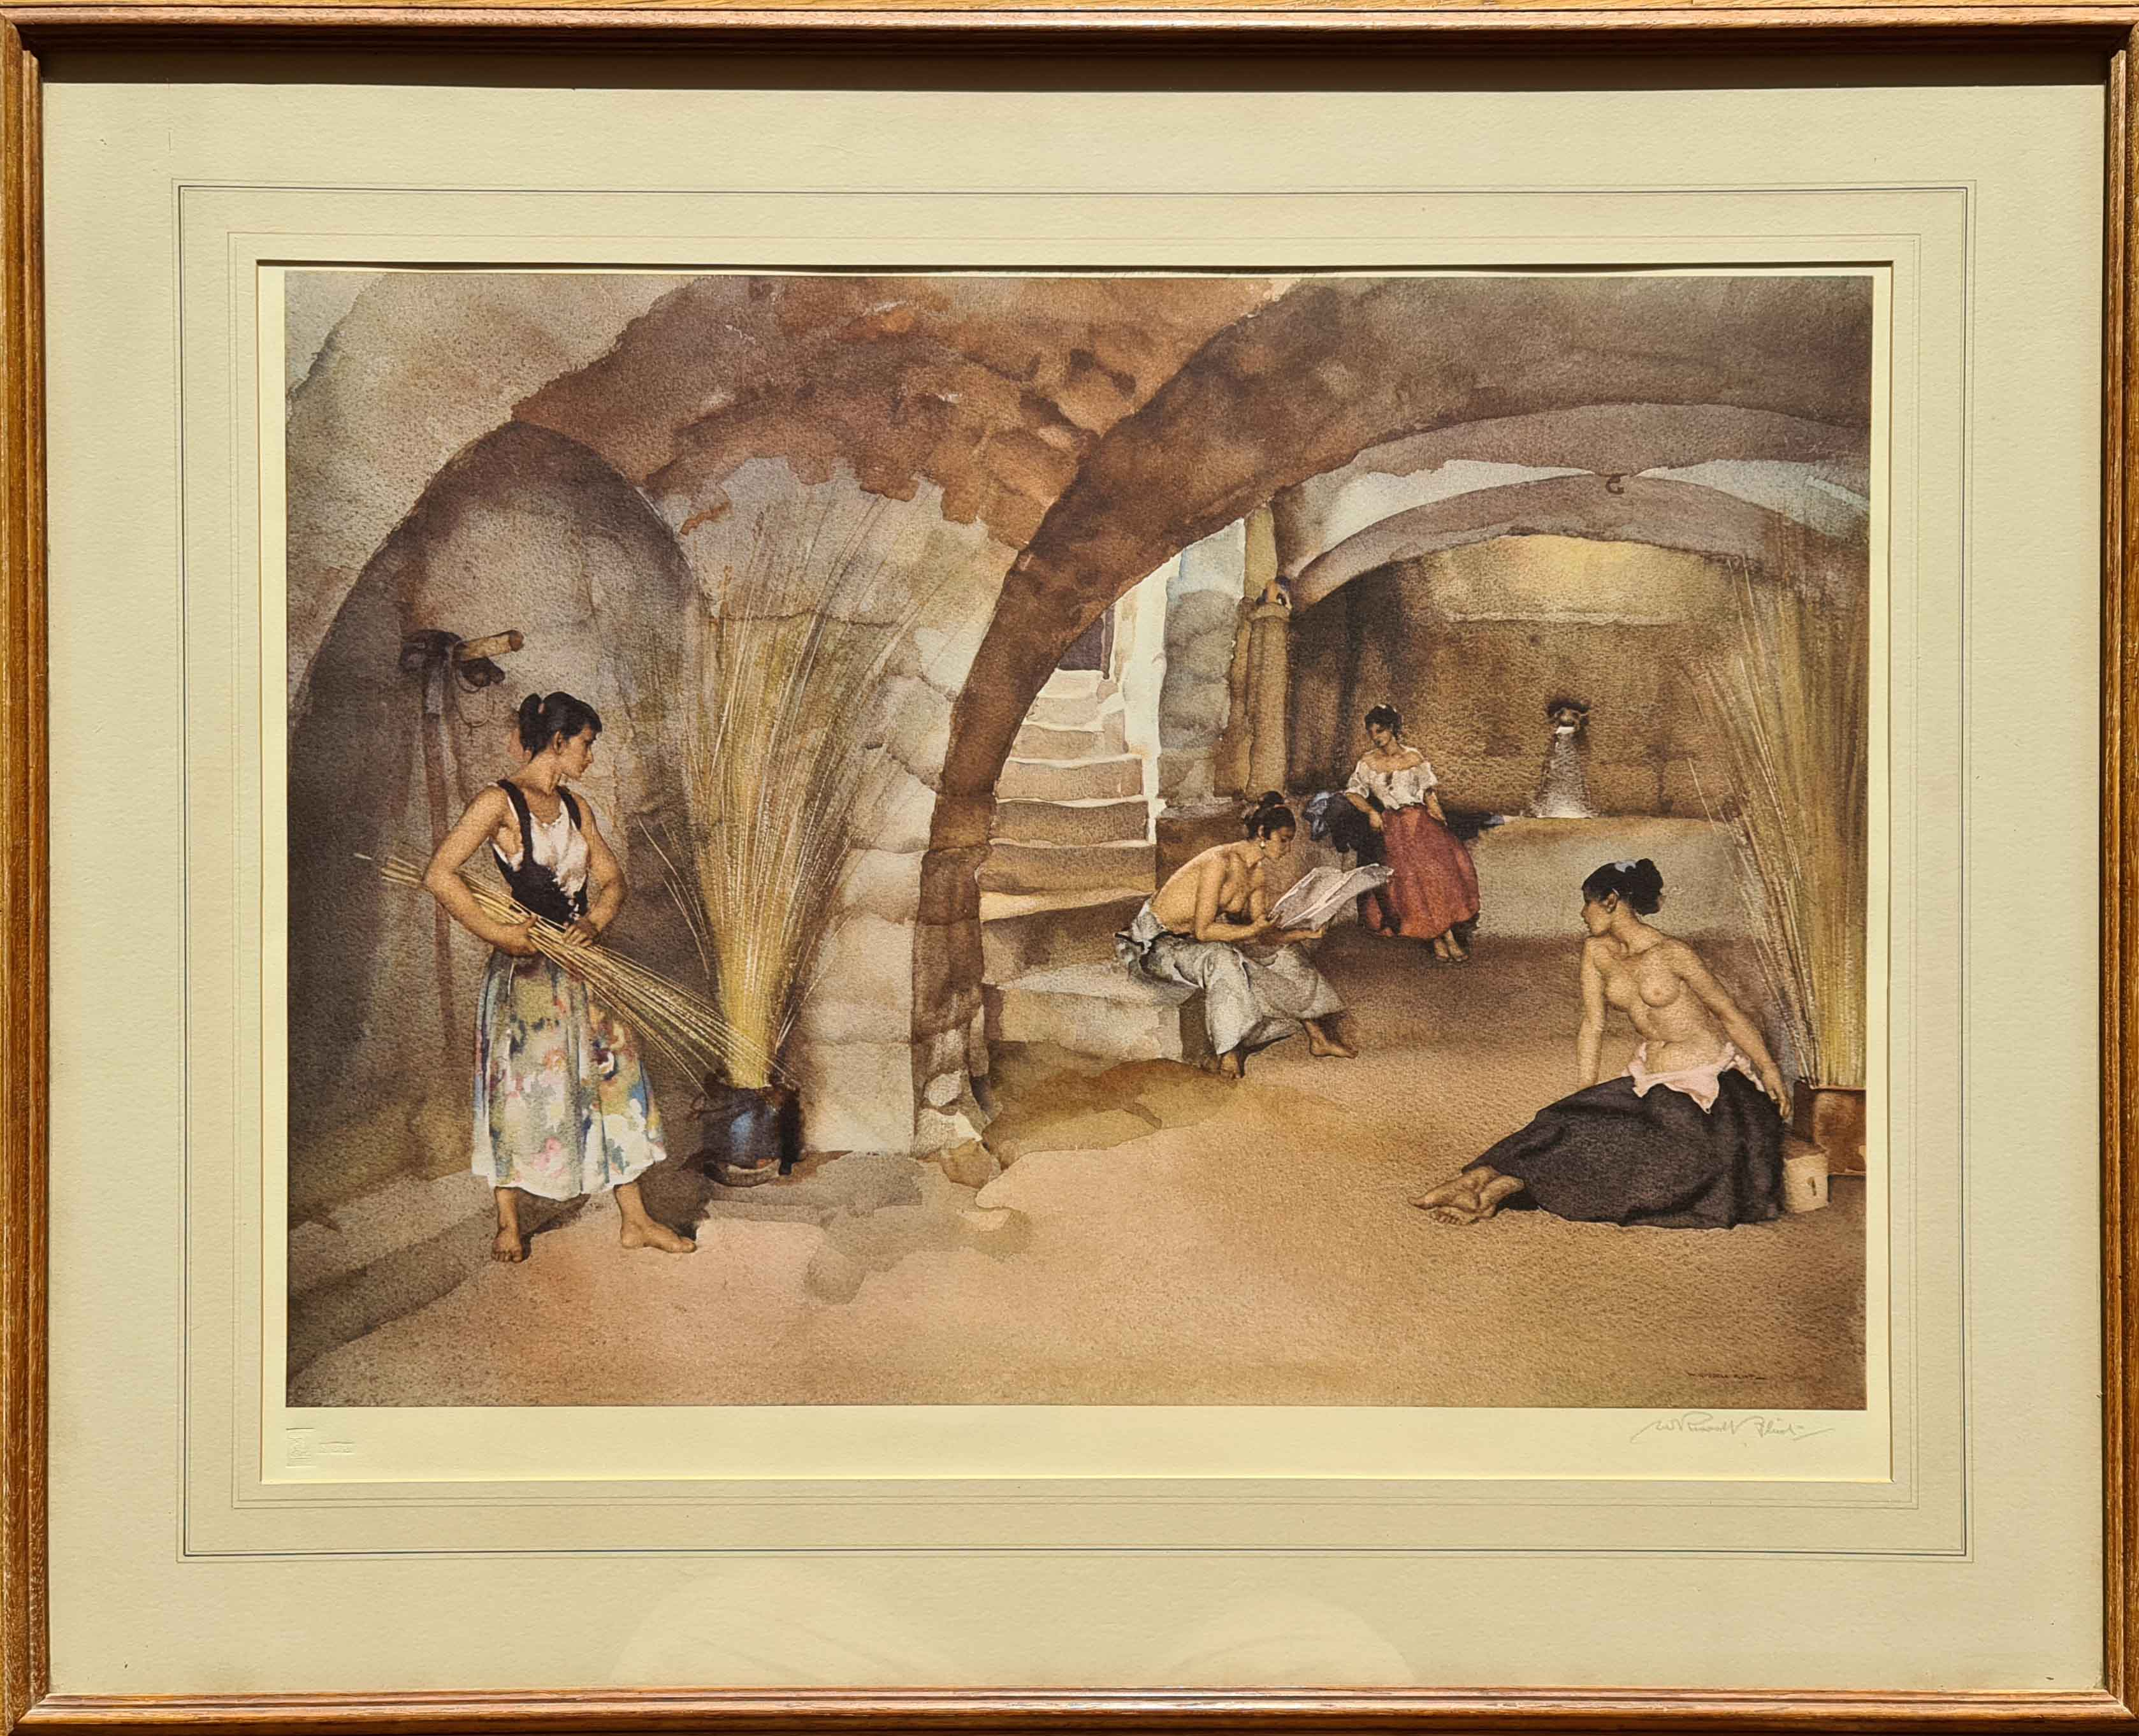 russell flint, signed limited edition, four sisters, Chazelet, print